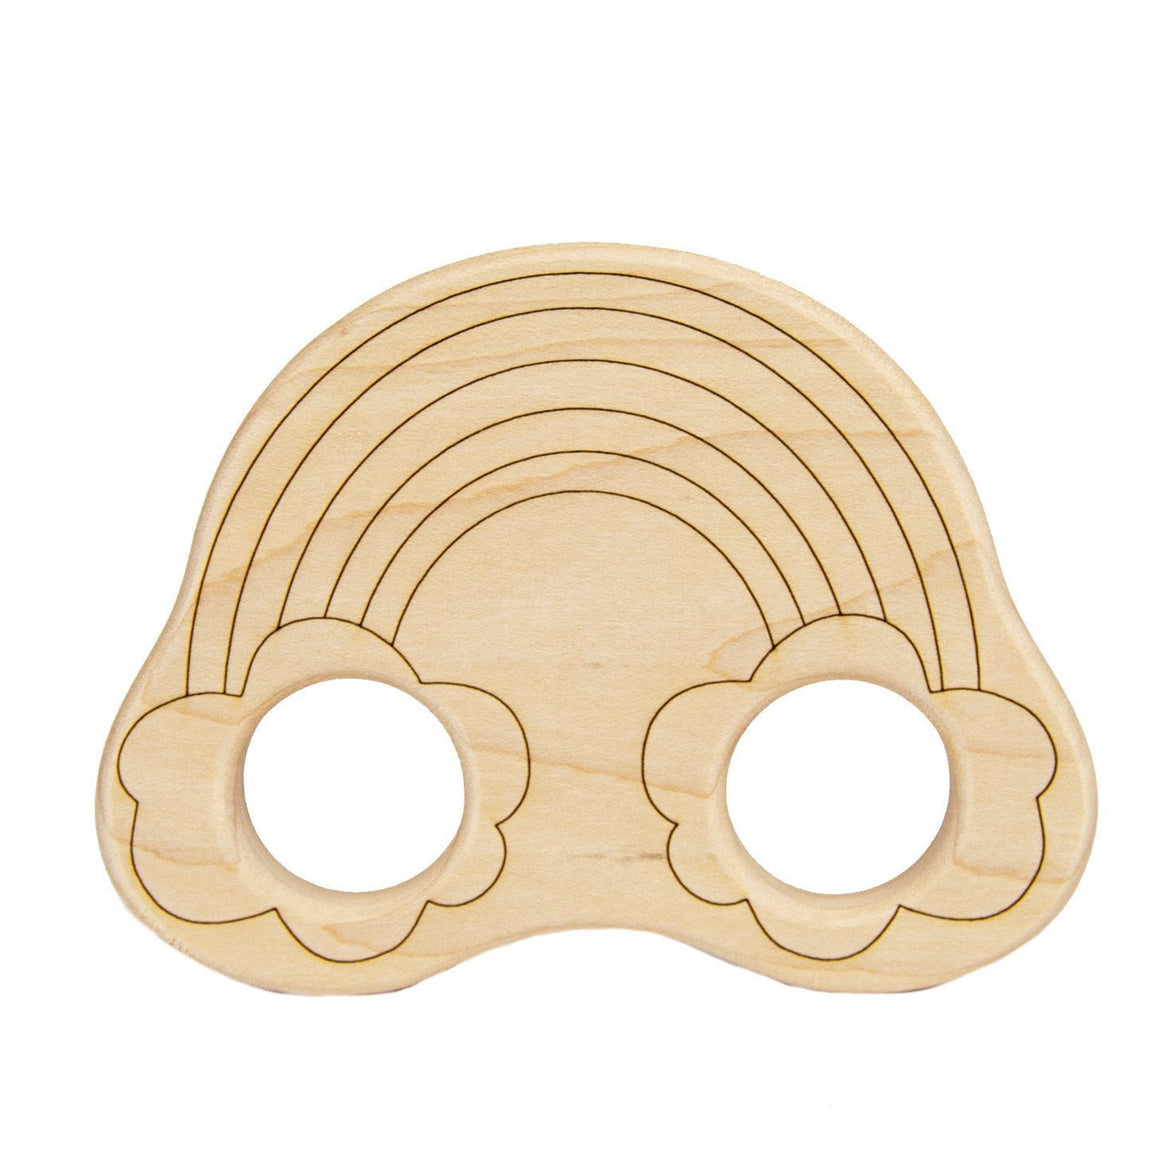 Little Sapling Toys Wood Toy Teethers